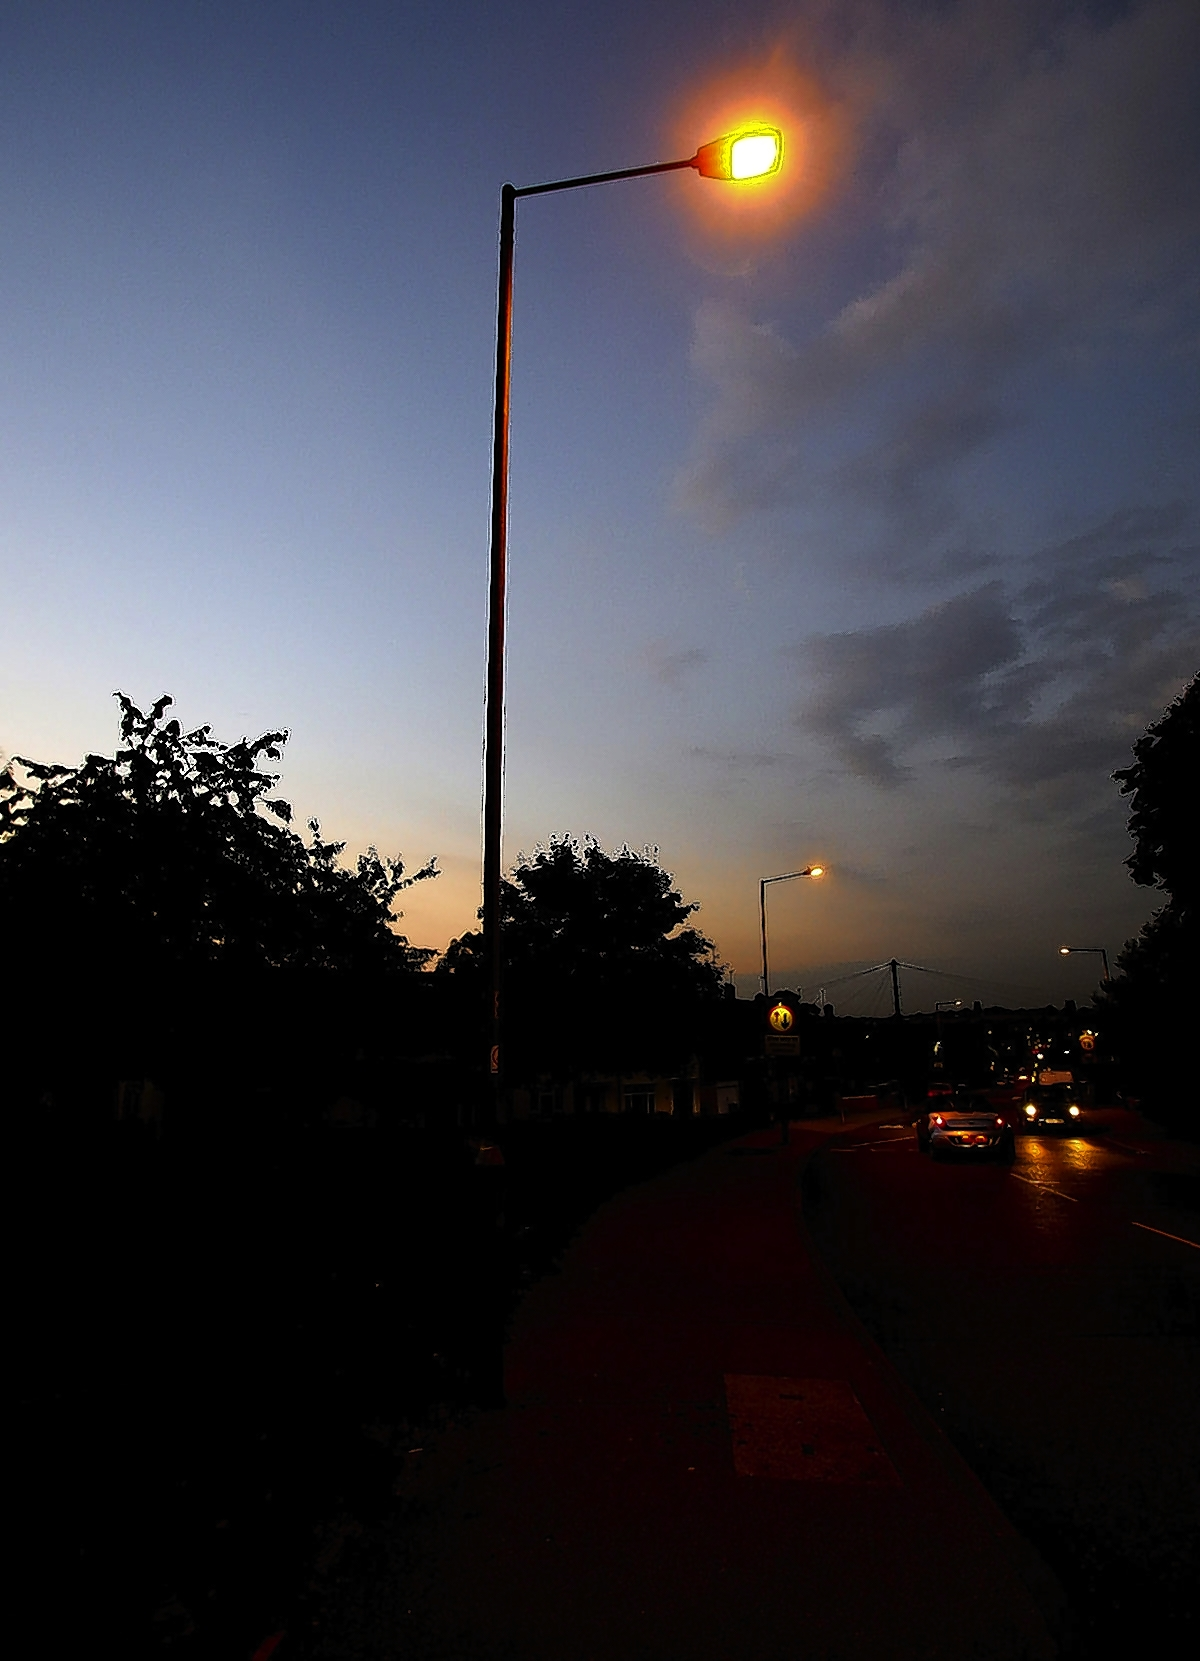 Sixteen complaints lodged about street lighting in a month